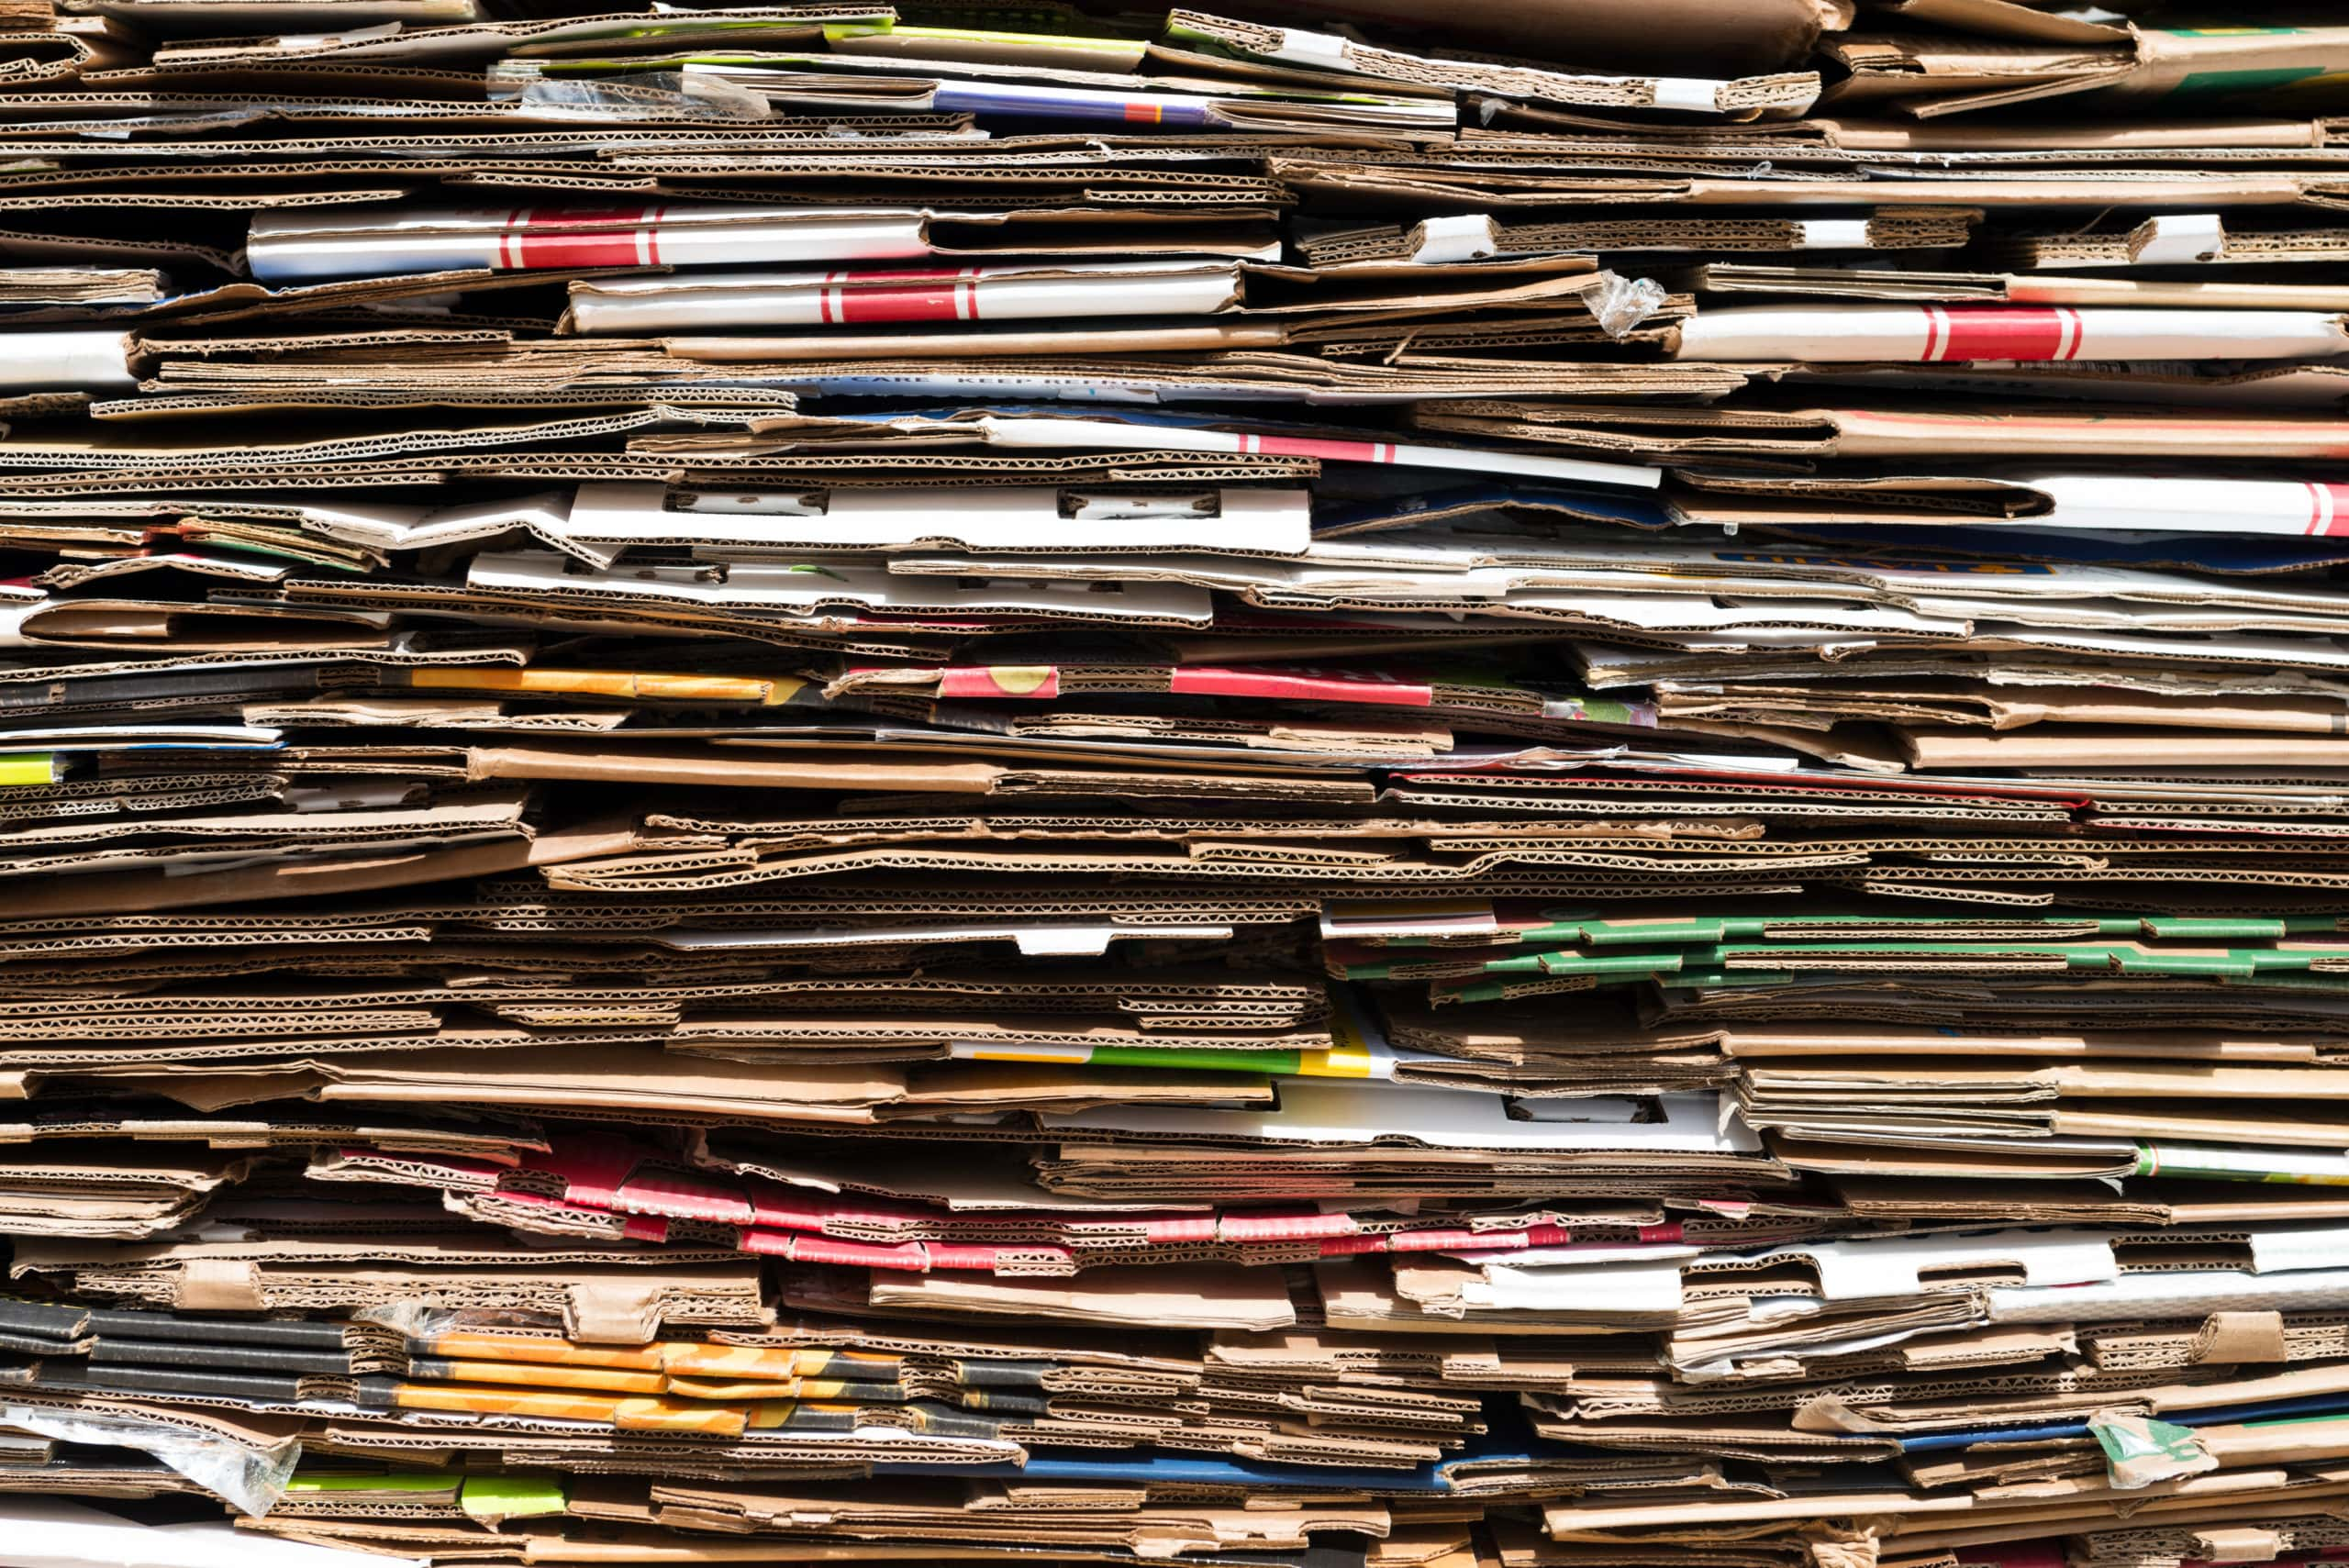 Pile of old cardboard boxes forming background